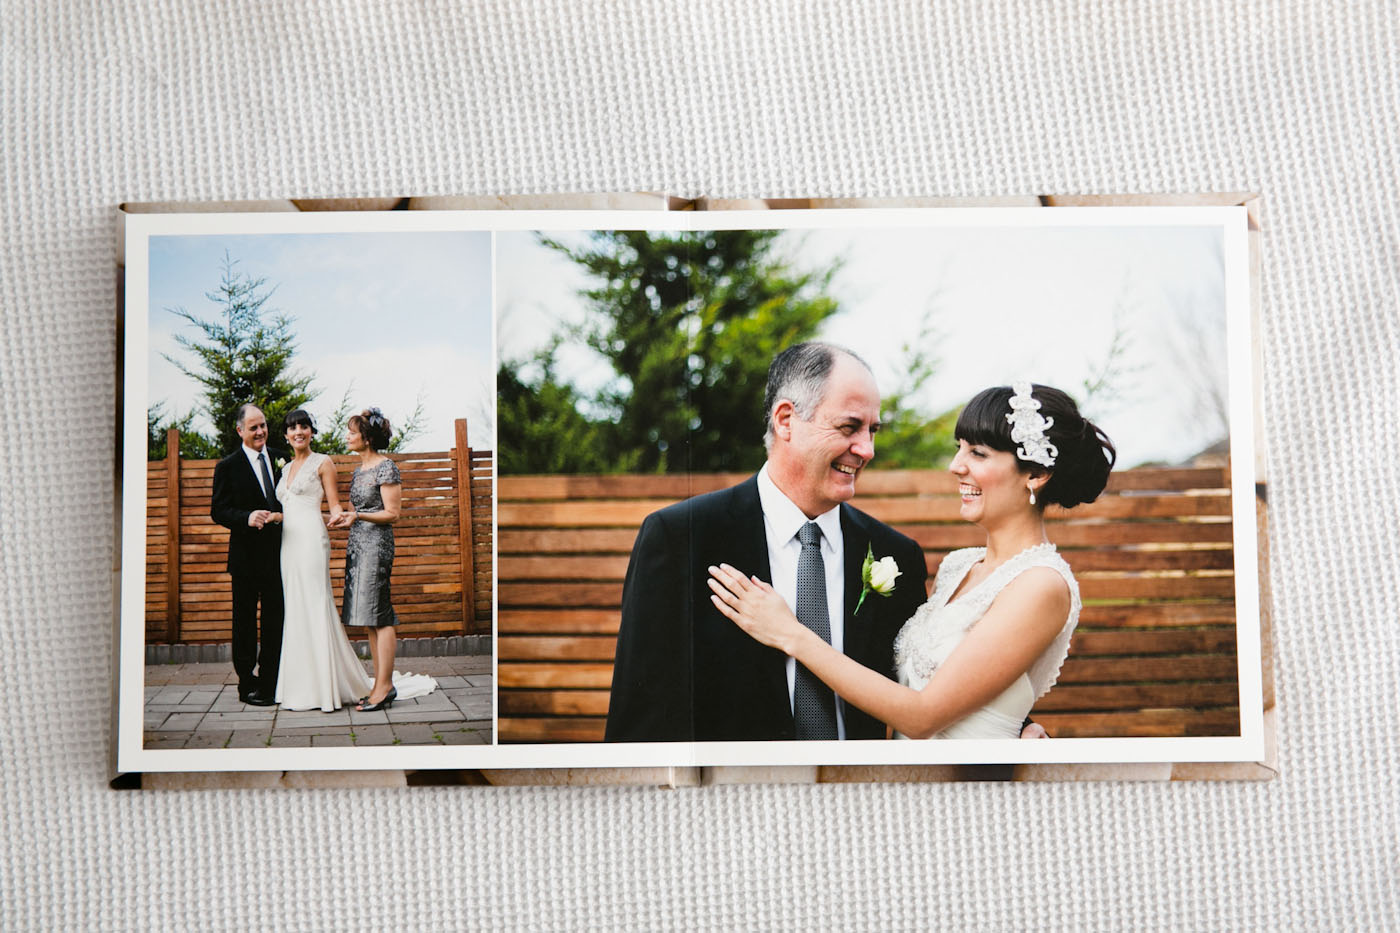 it's modified photo album that you can give as wedding gift for parents